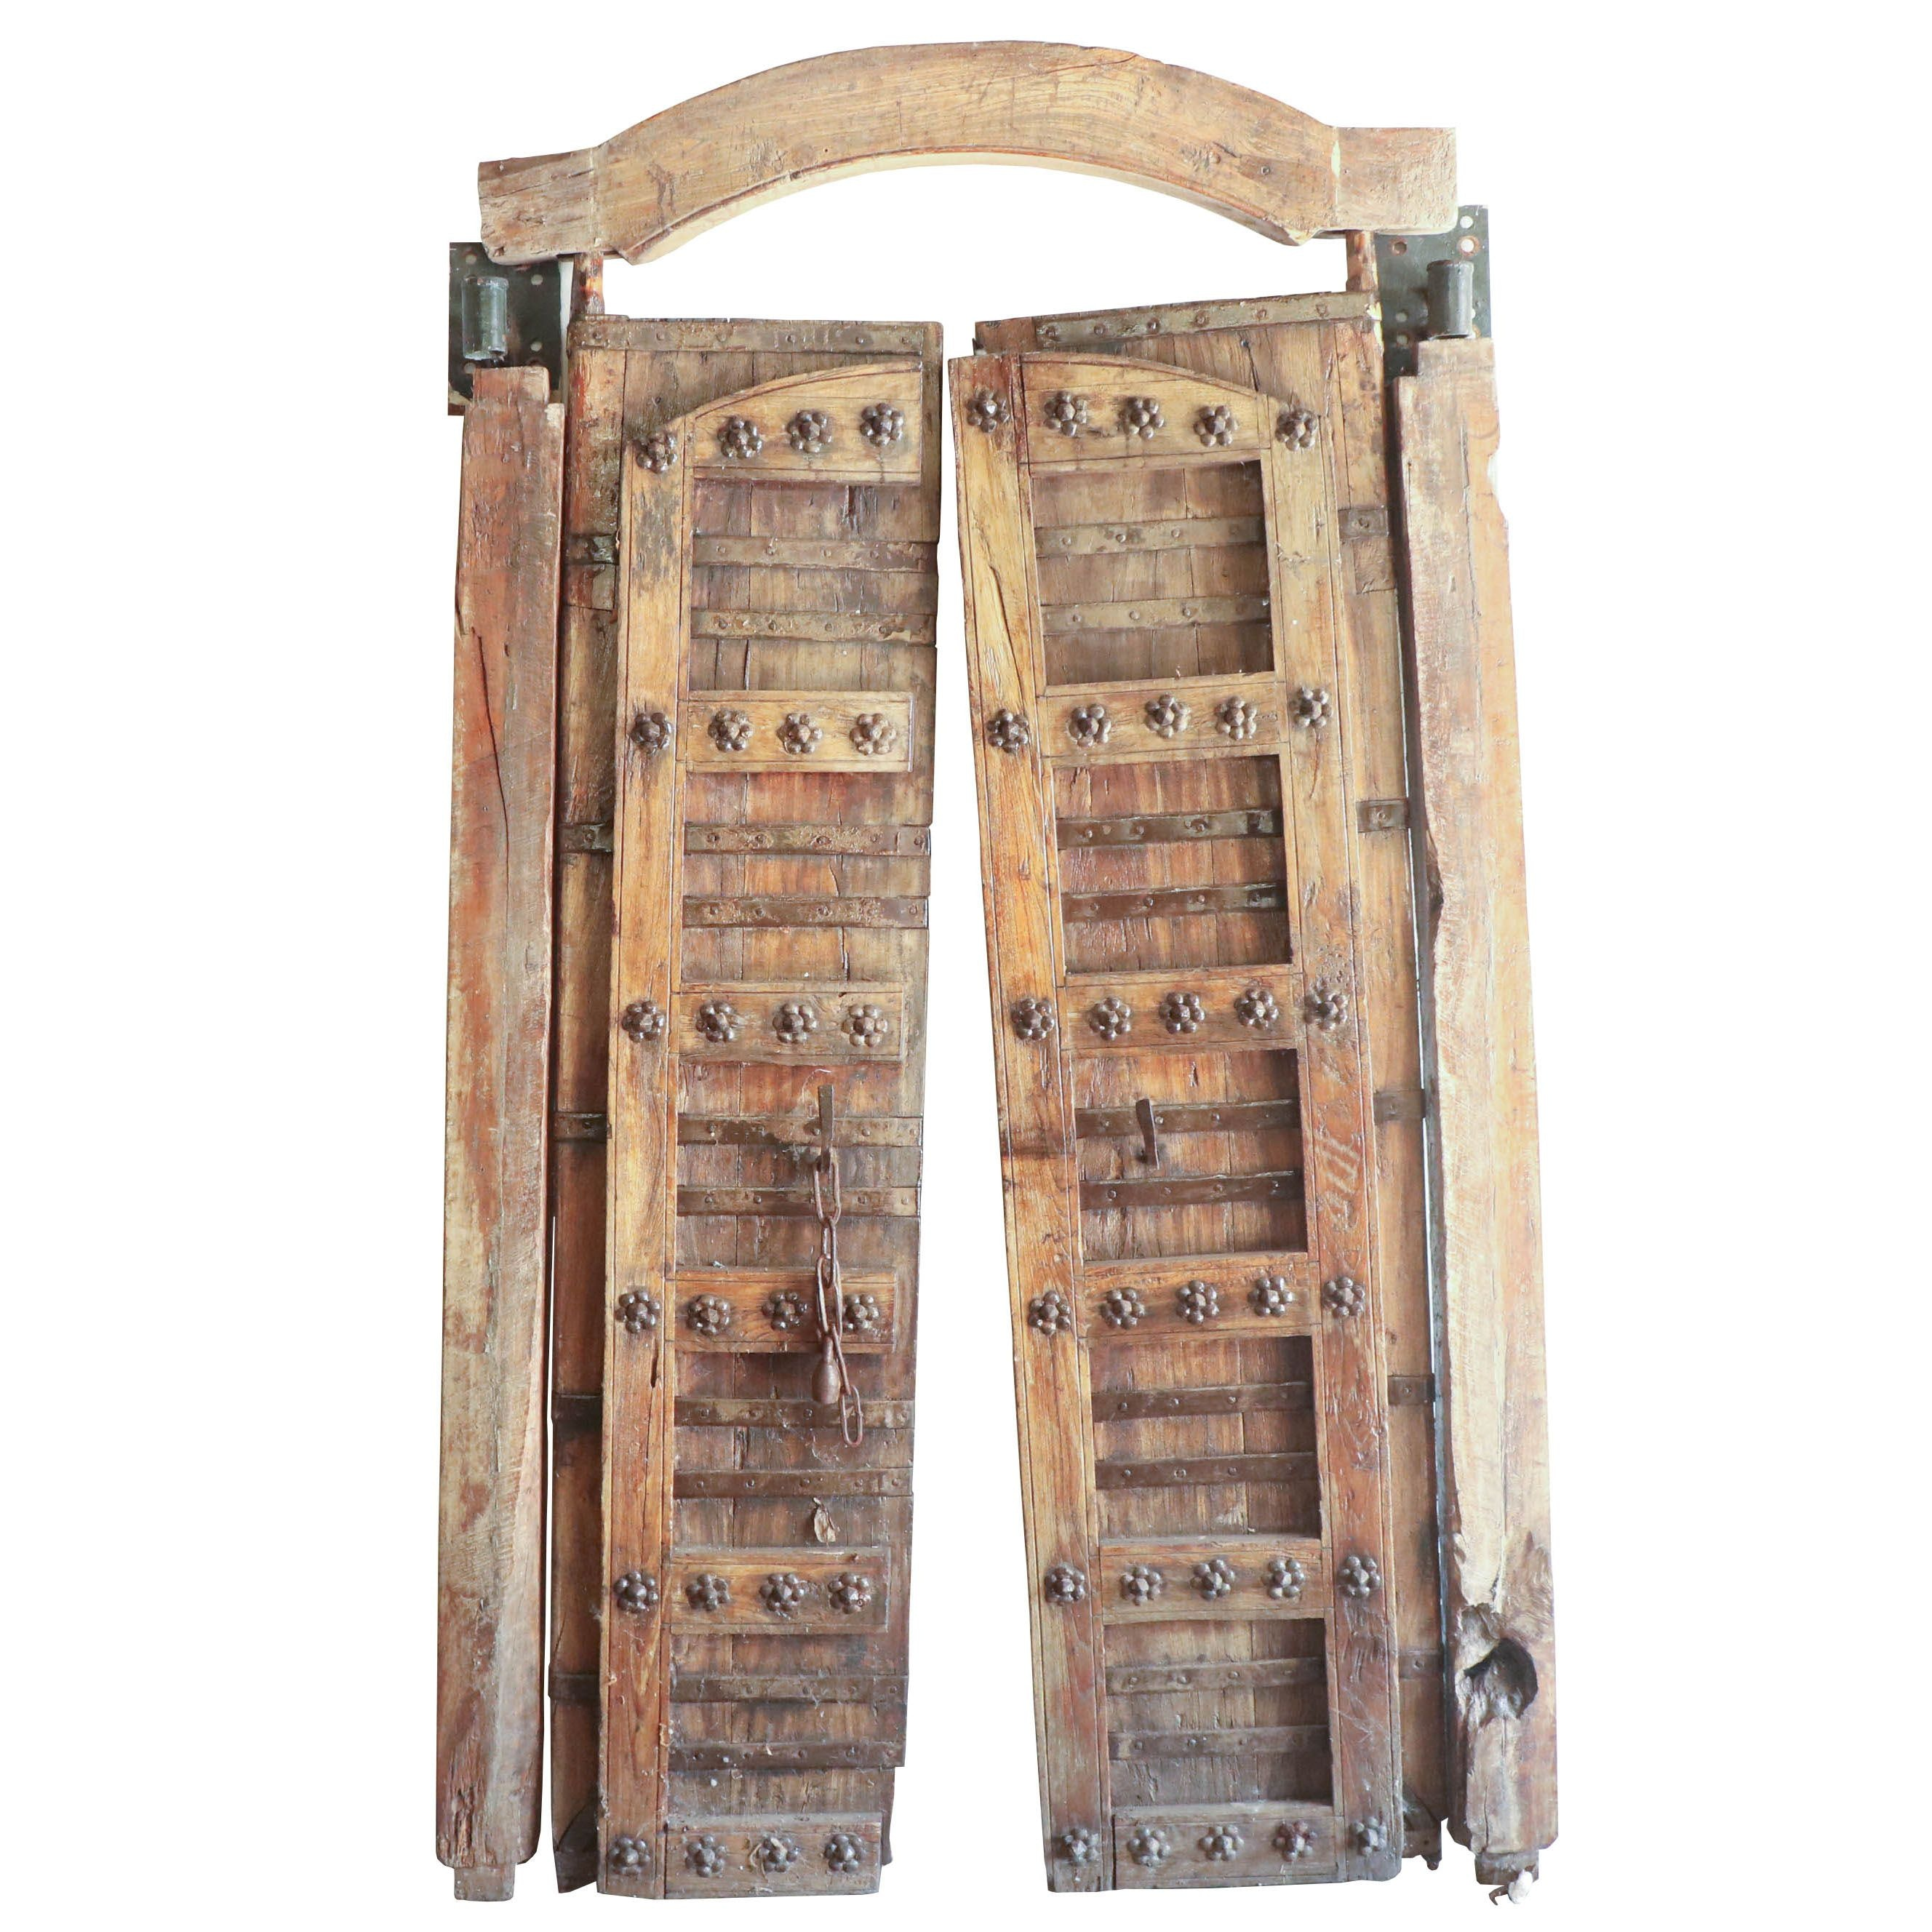 Western Saloon Style Wooden Doors with Floral Embellishments